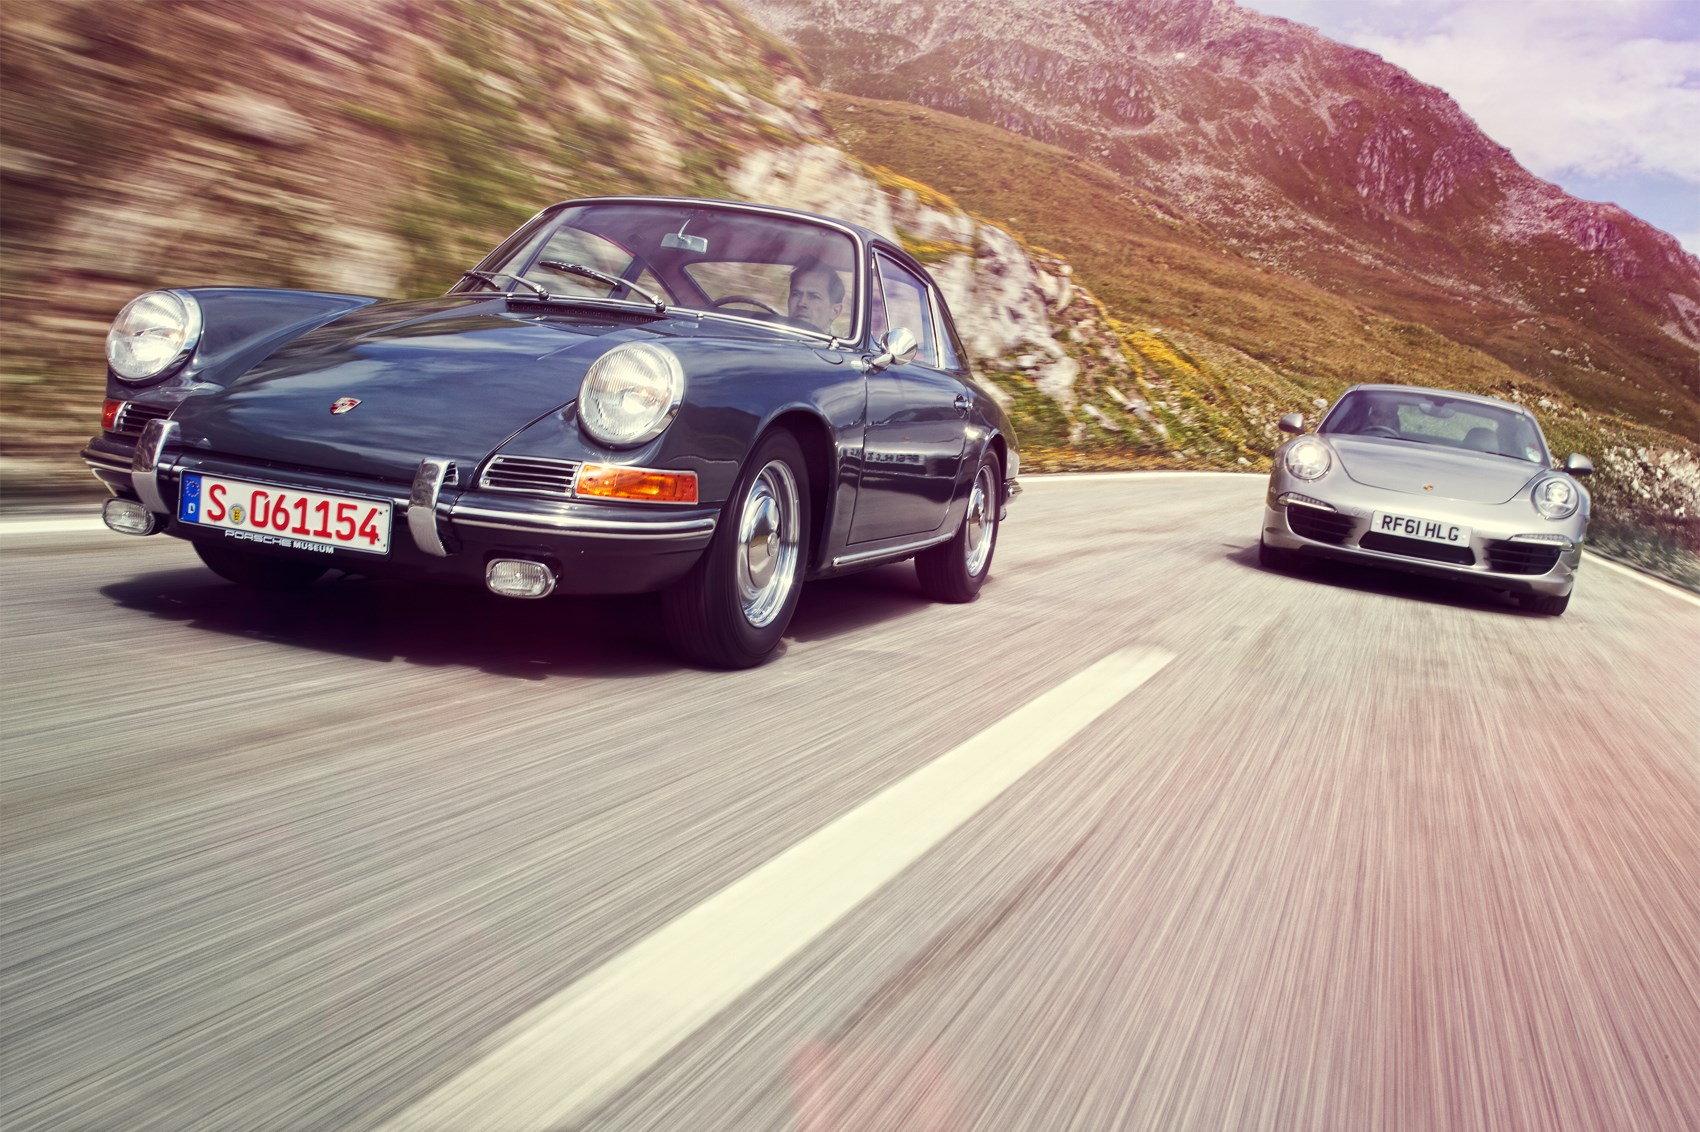 Old meets new: Porsche 911 twin test – 1965 911 vs 2012 991 (CAR on